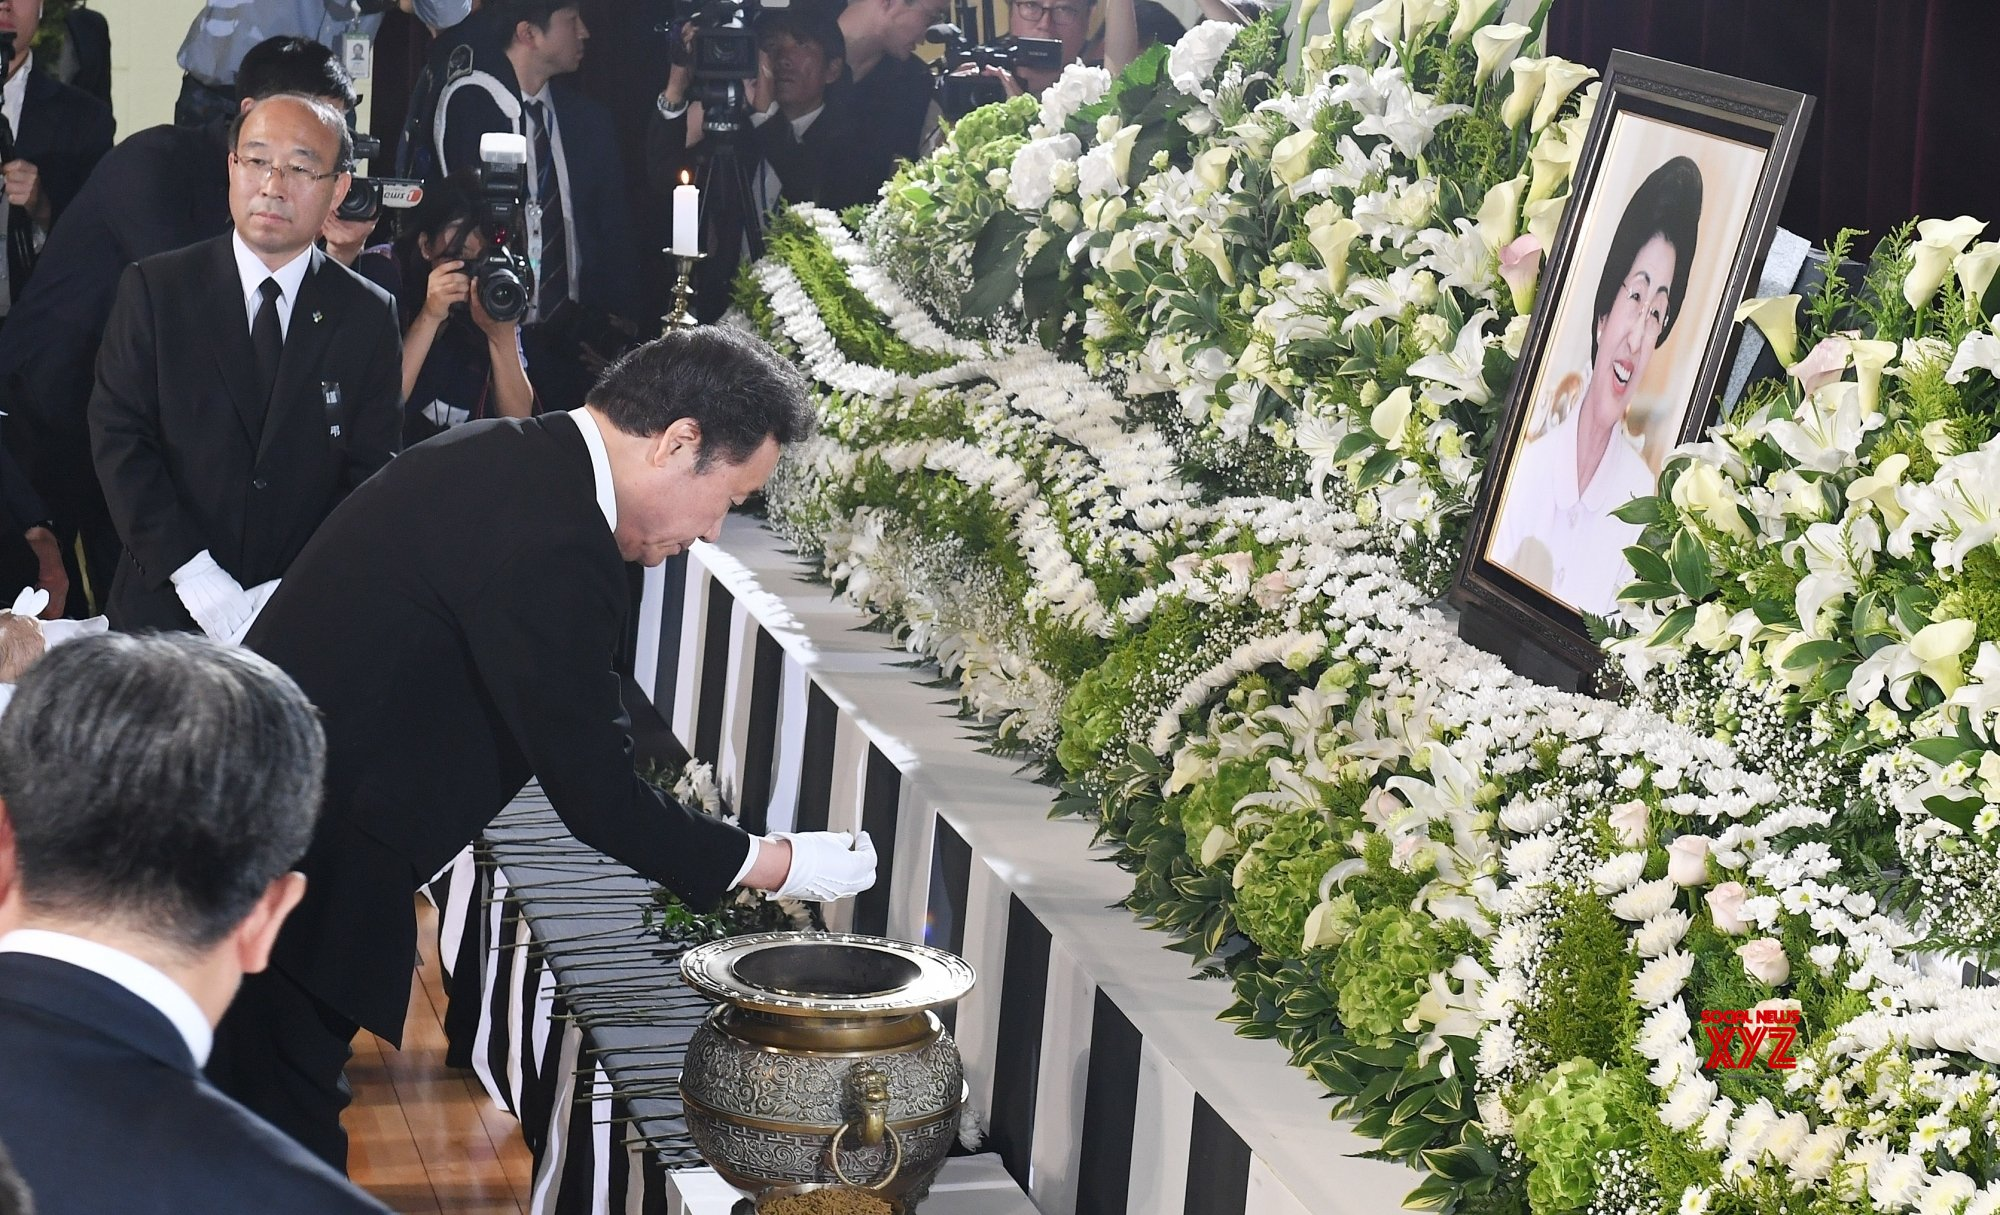 Seoul: Funeral for former first lady #Gallery